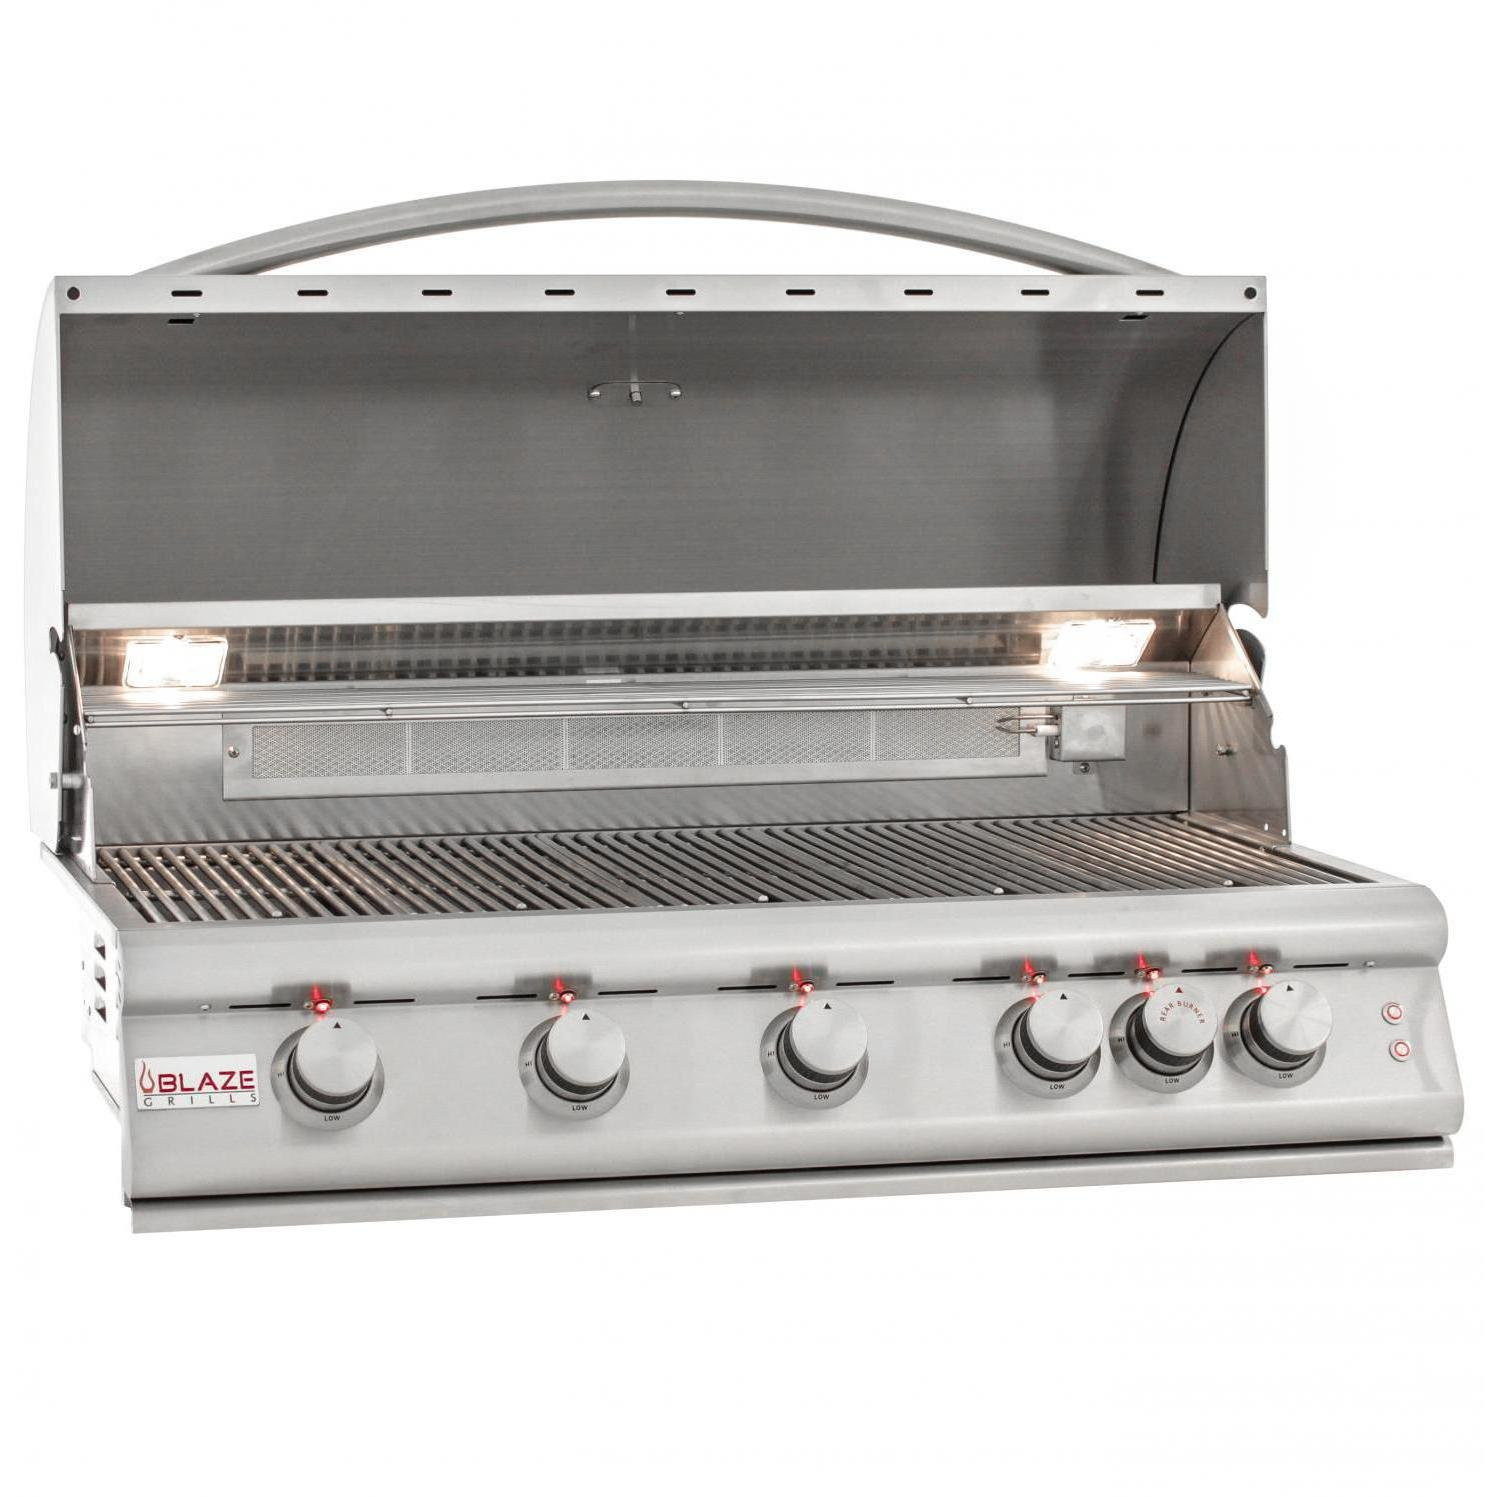 Blaze Lte 40-inch 5-burner Built-in Propane Gas Grill With Rear Infrared Burner & Grill Lights - Blz-5lte2-lp